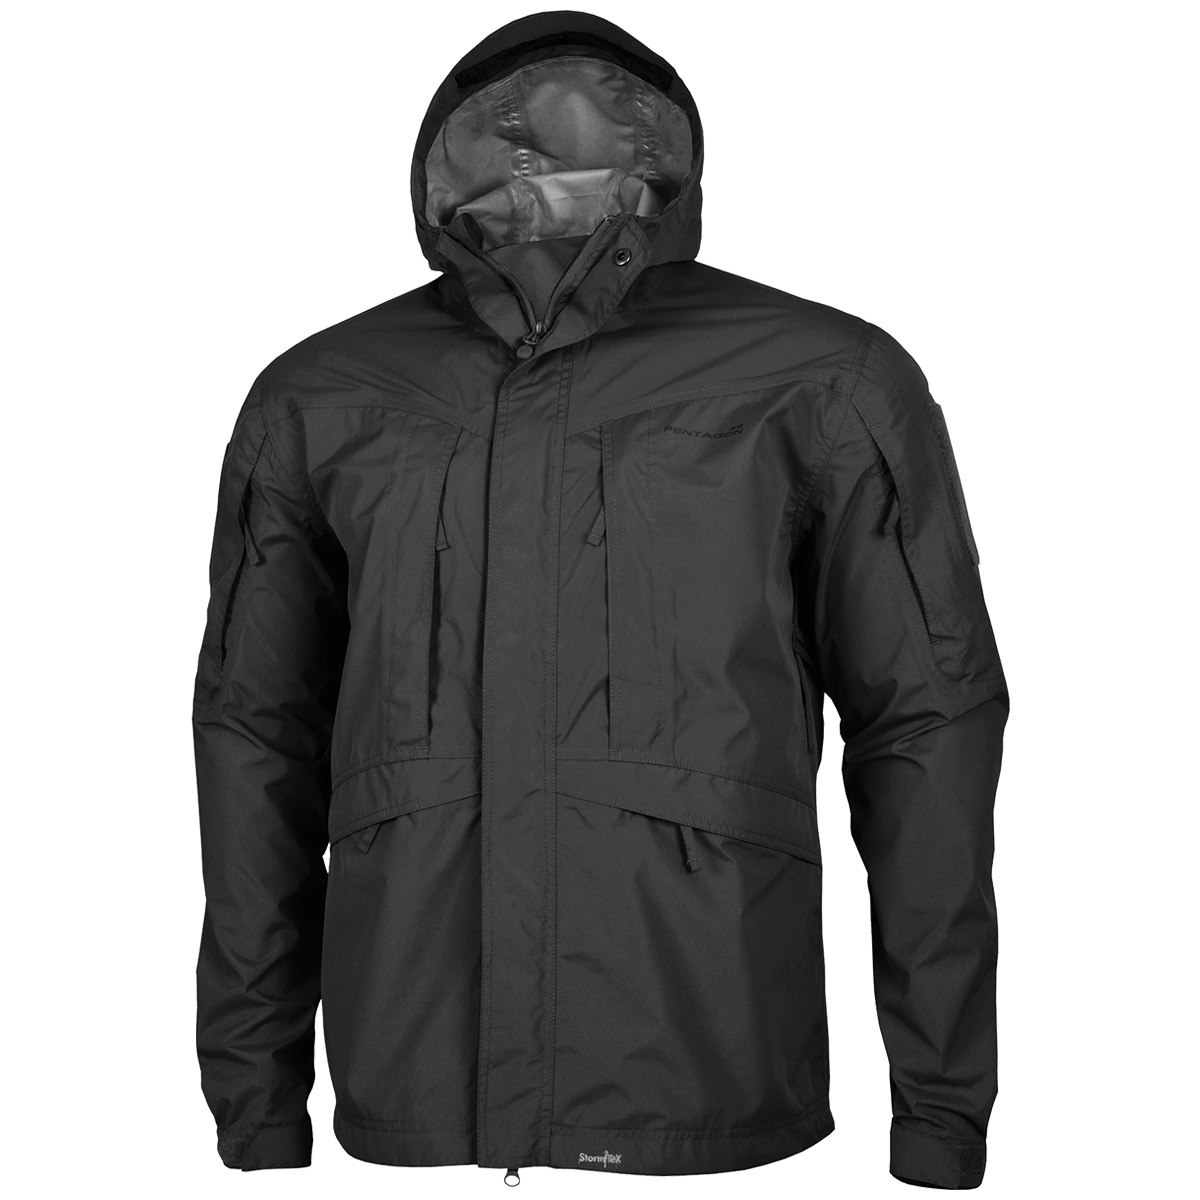 7952d645a Sentinel Pentagon Monsoon Tactical Rain Shell Mens Waterproof Jacket Hiking  Hunting Black